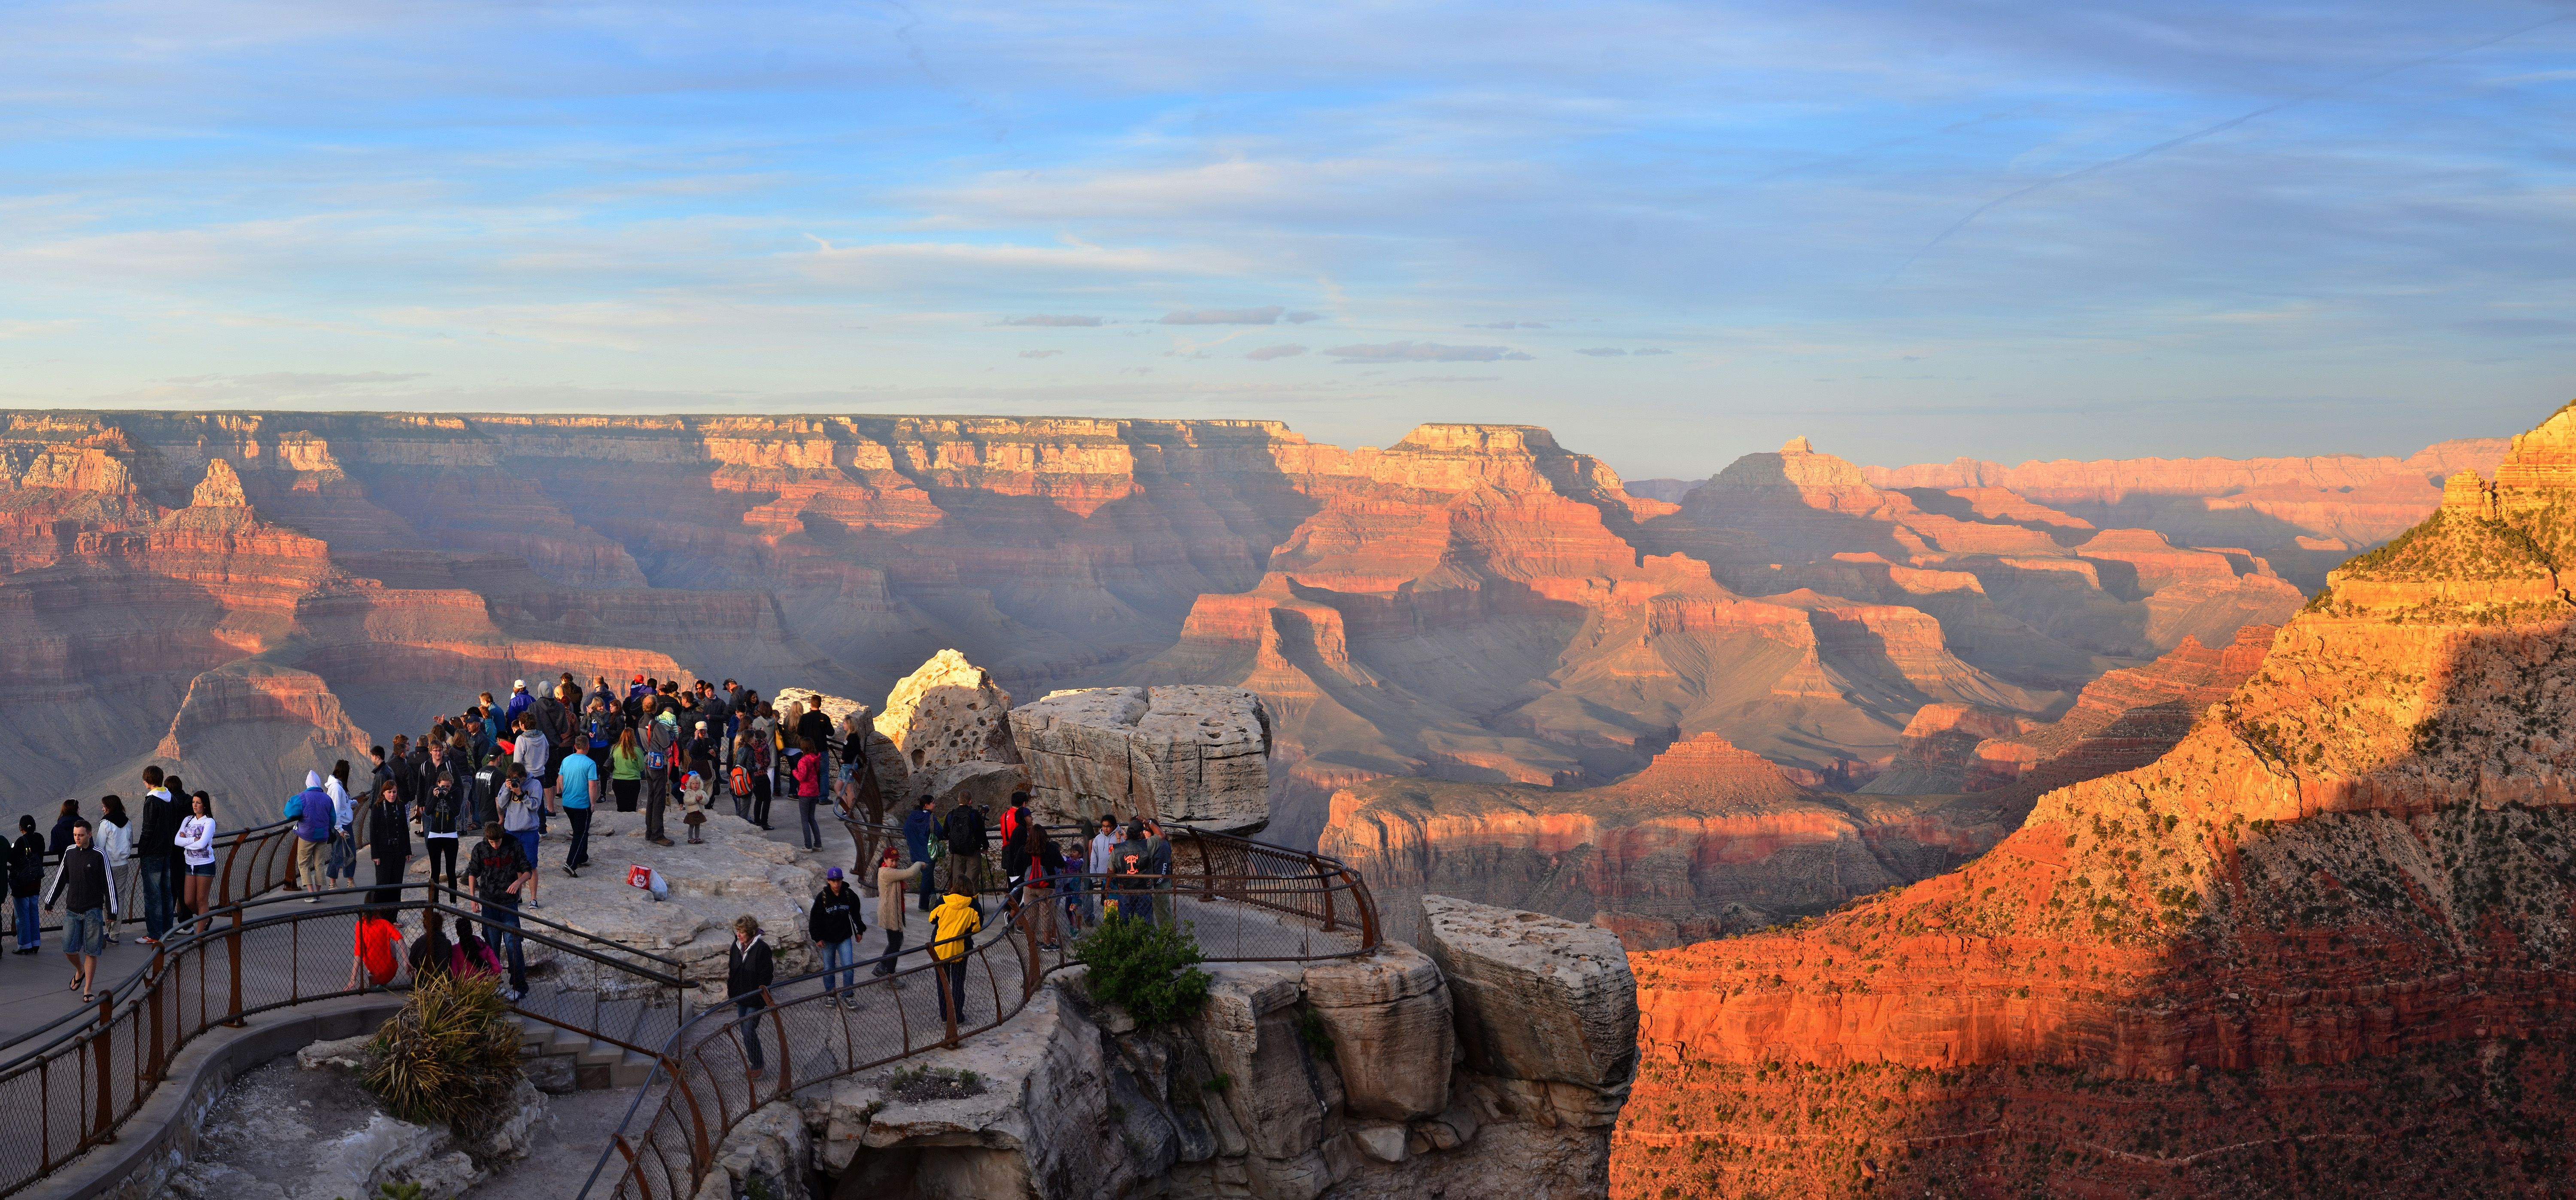 A Short Walk From The Grand Canyon Visitor Center To Mather